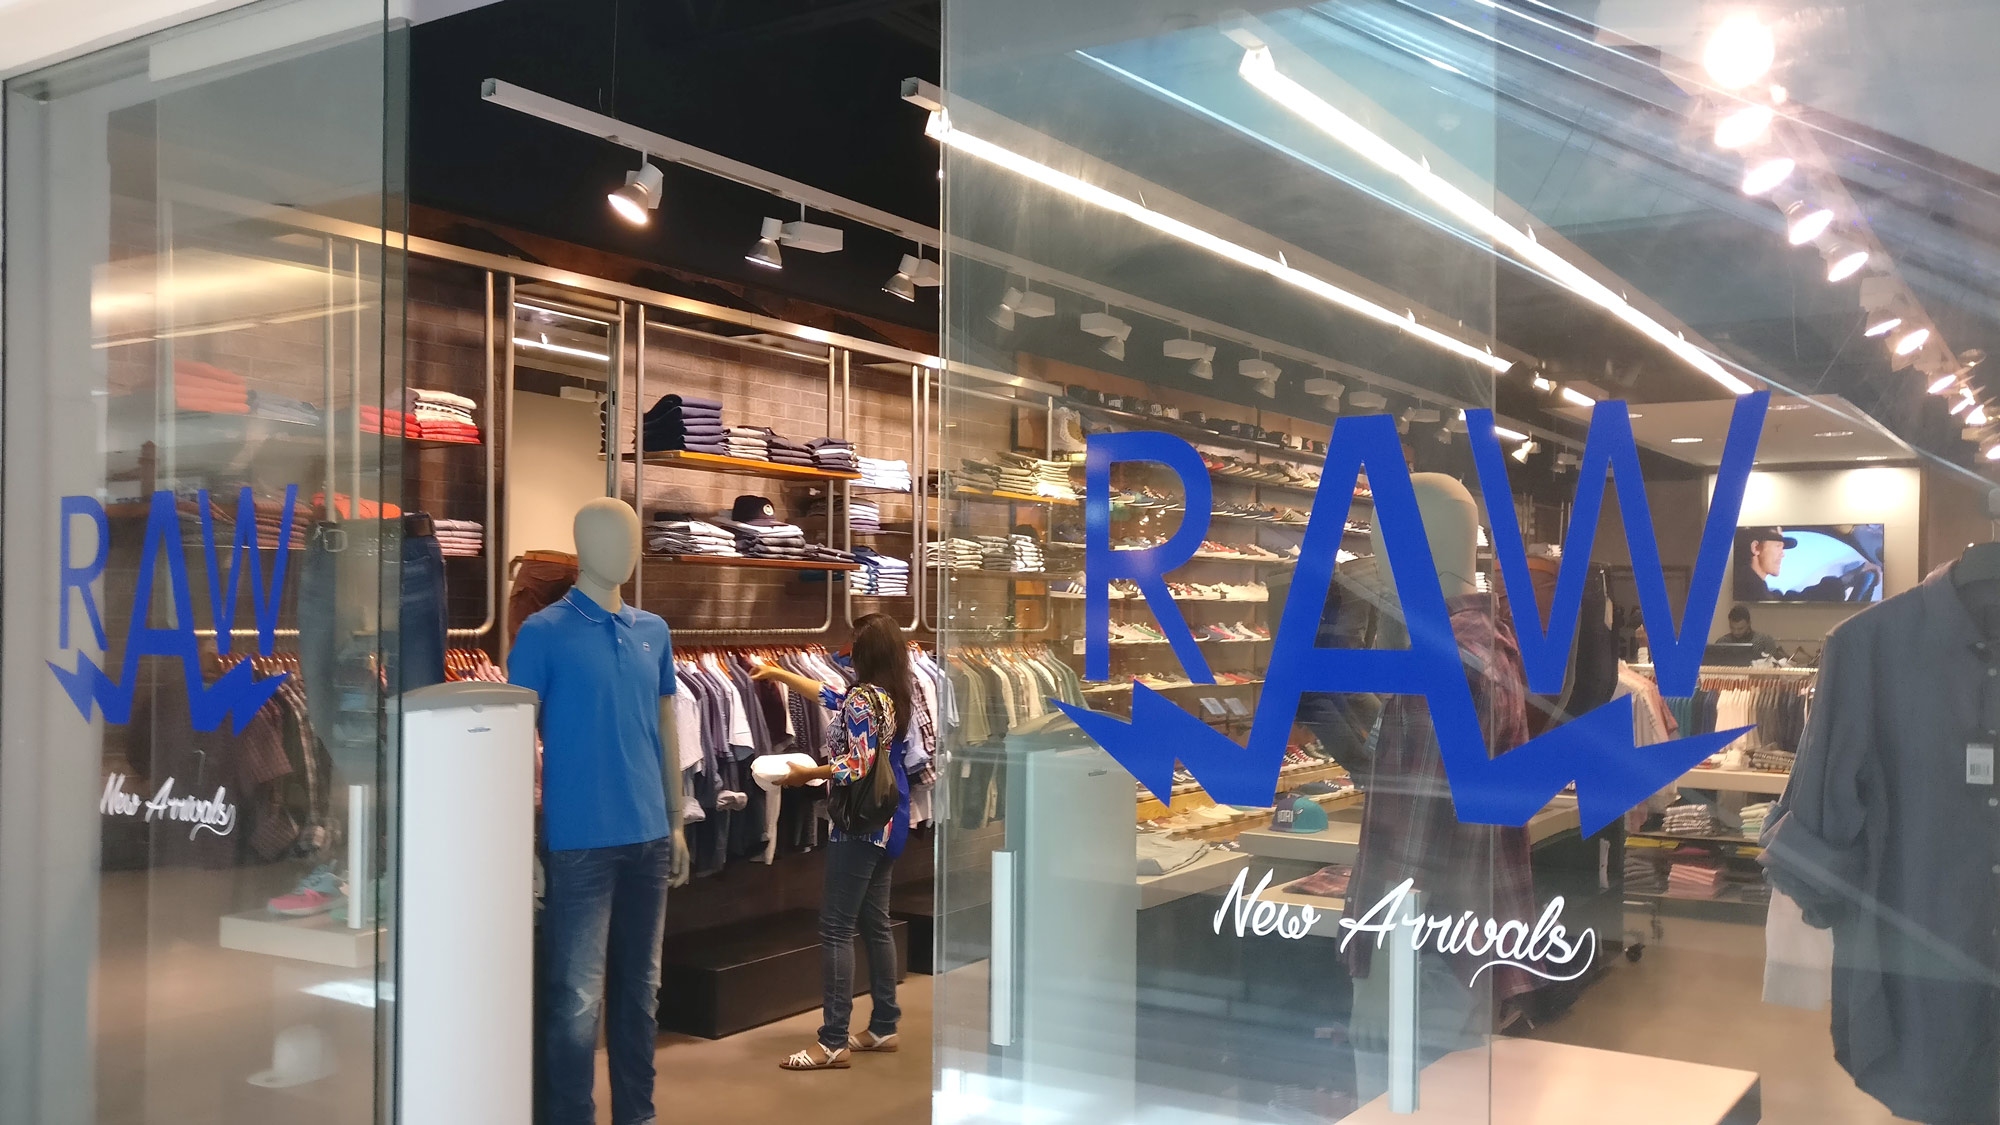 The RAW Store